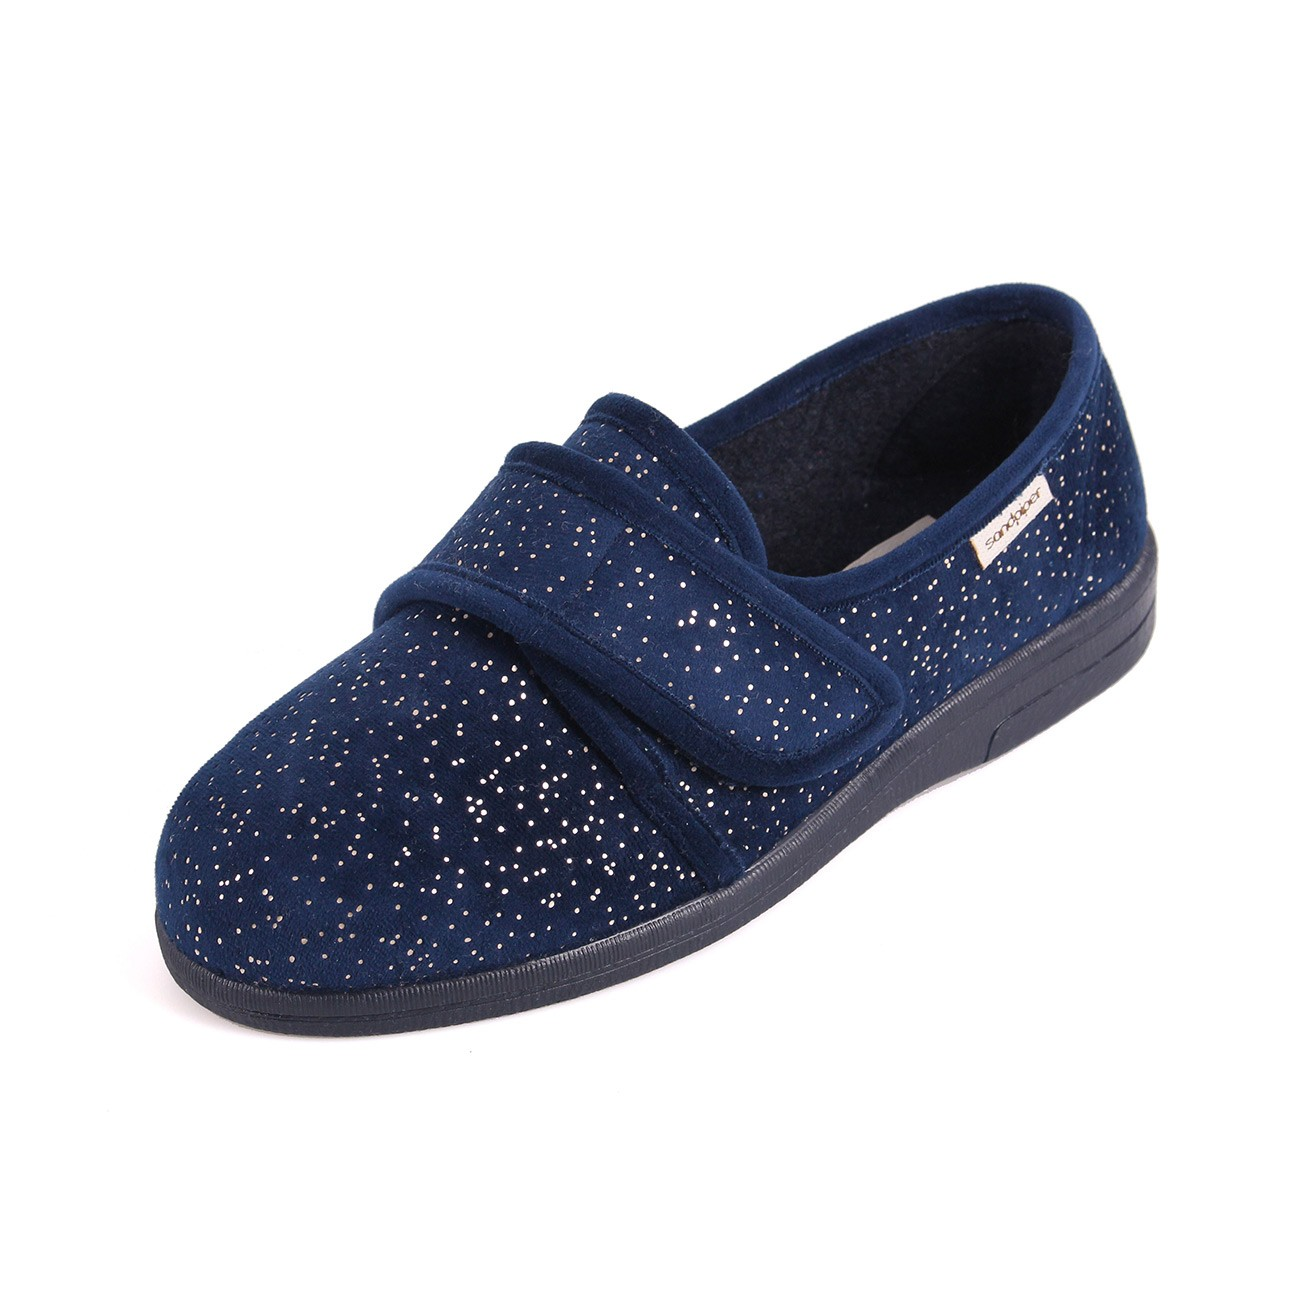 Sandpiper Sophie Navy Sparkle Ladies Slipper